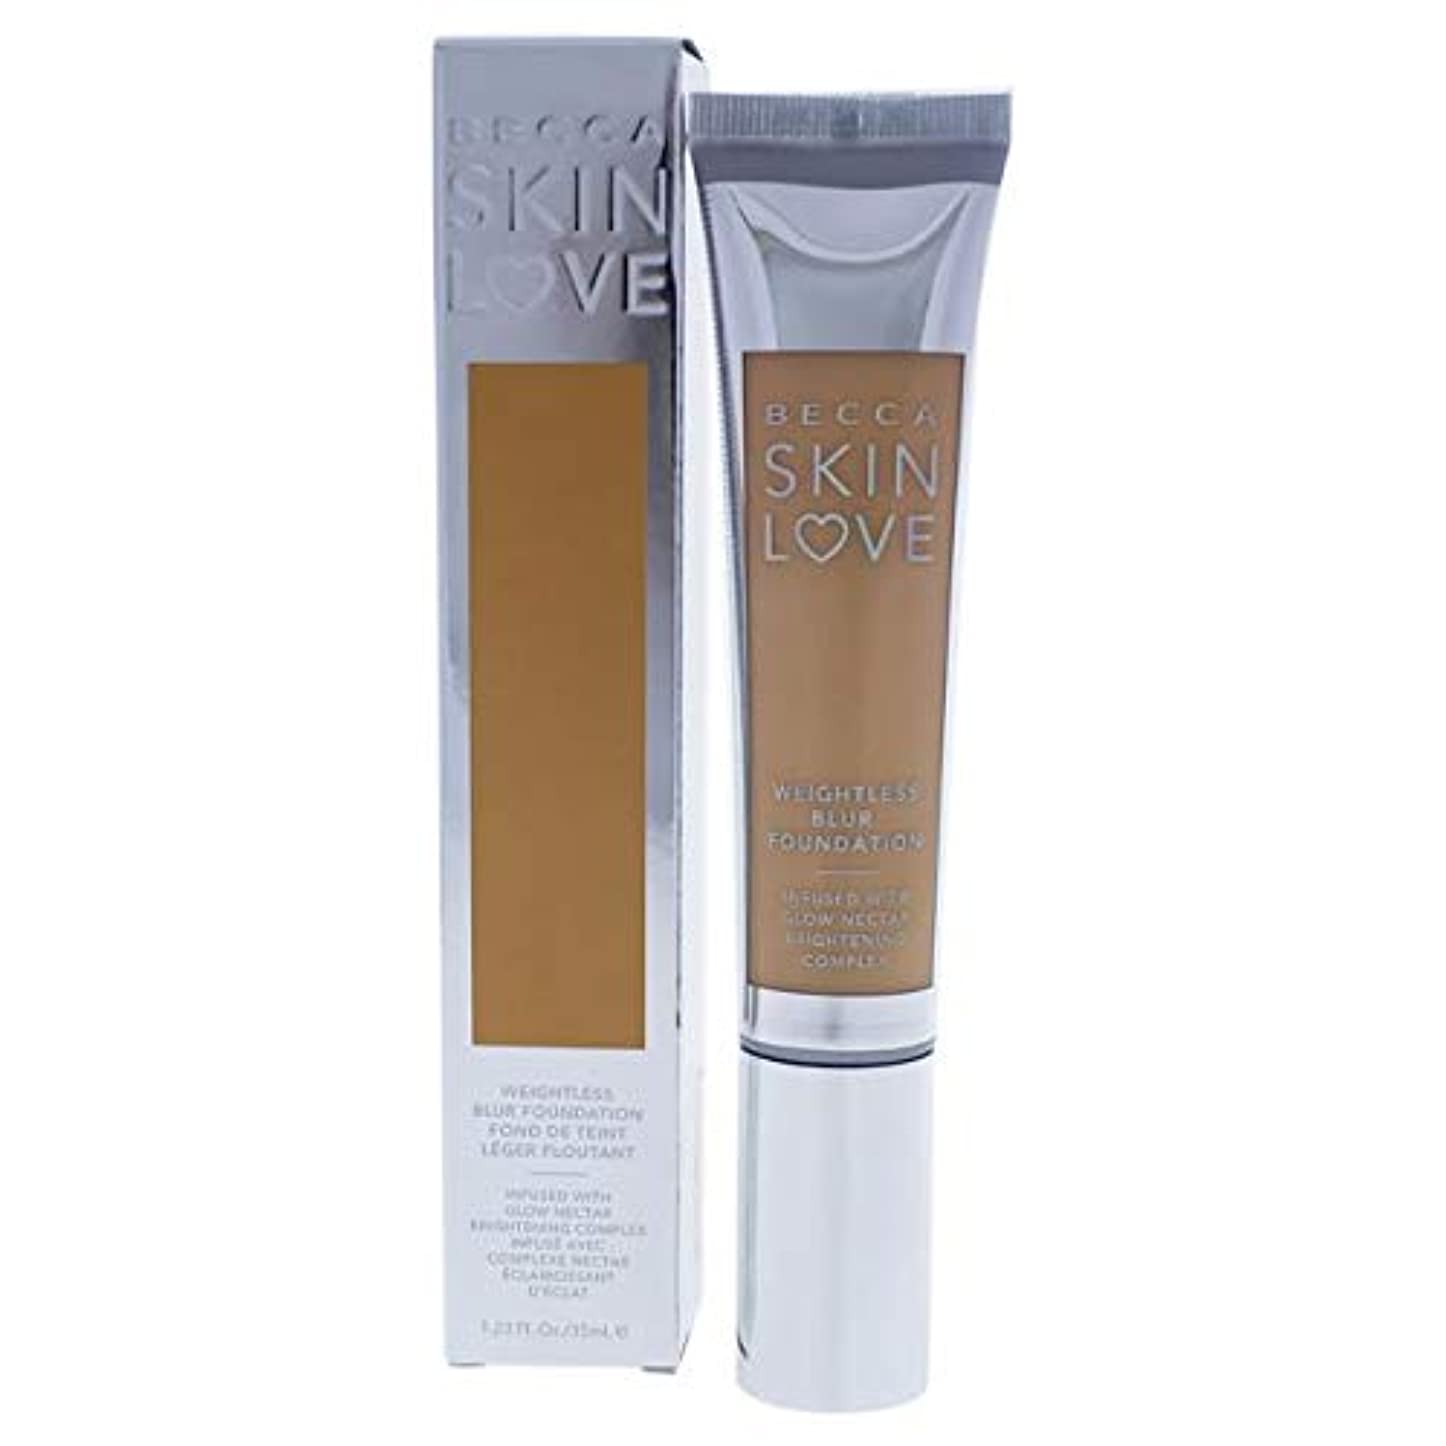 定刻依存取り壊すベッカ Skin Love Weightless Blur Foundation - # Cashmere 35ml/1.23oz並行輸入品